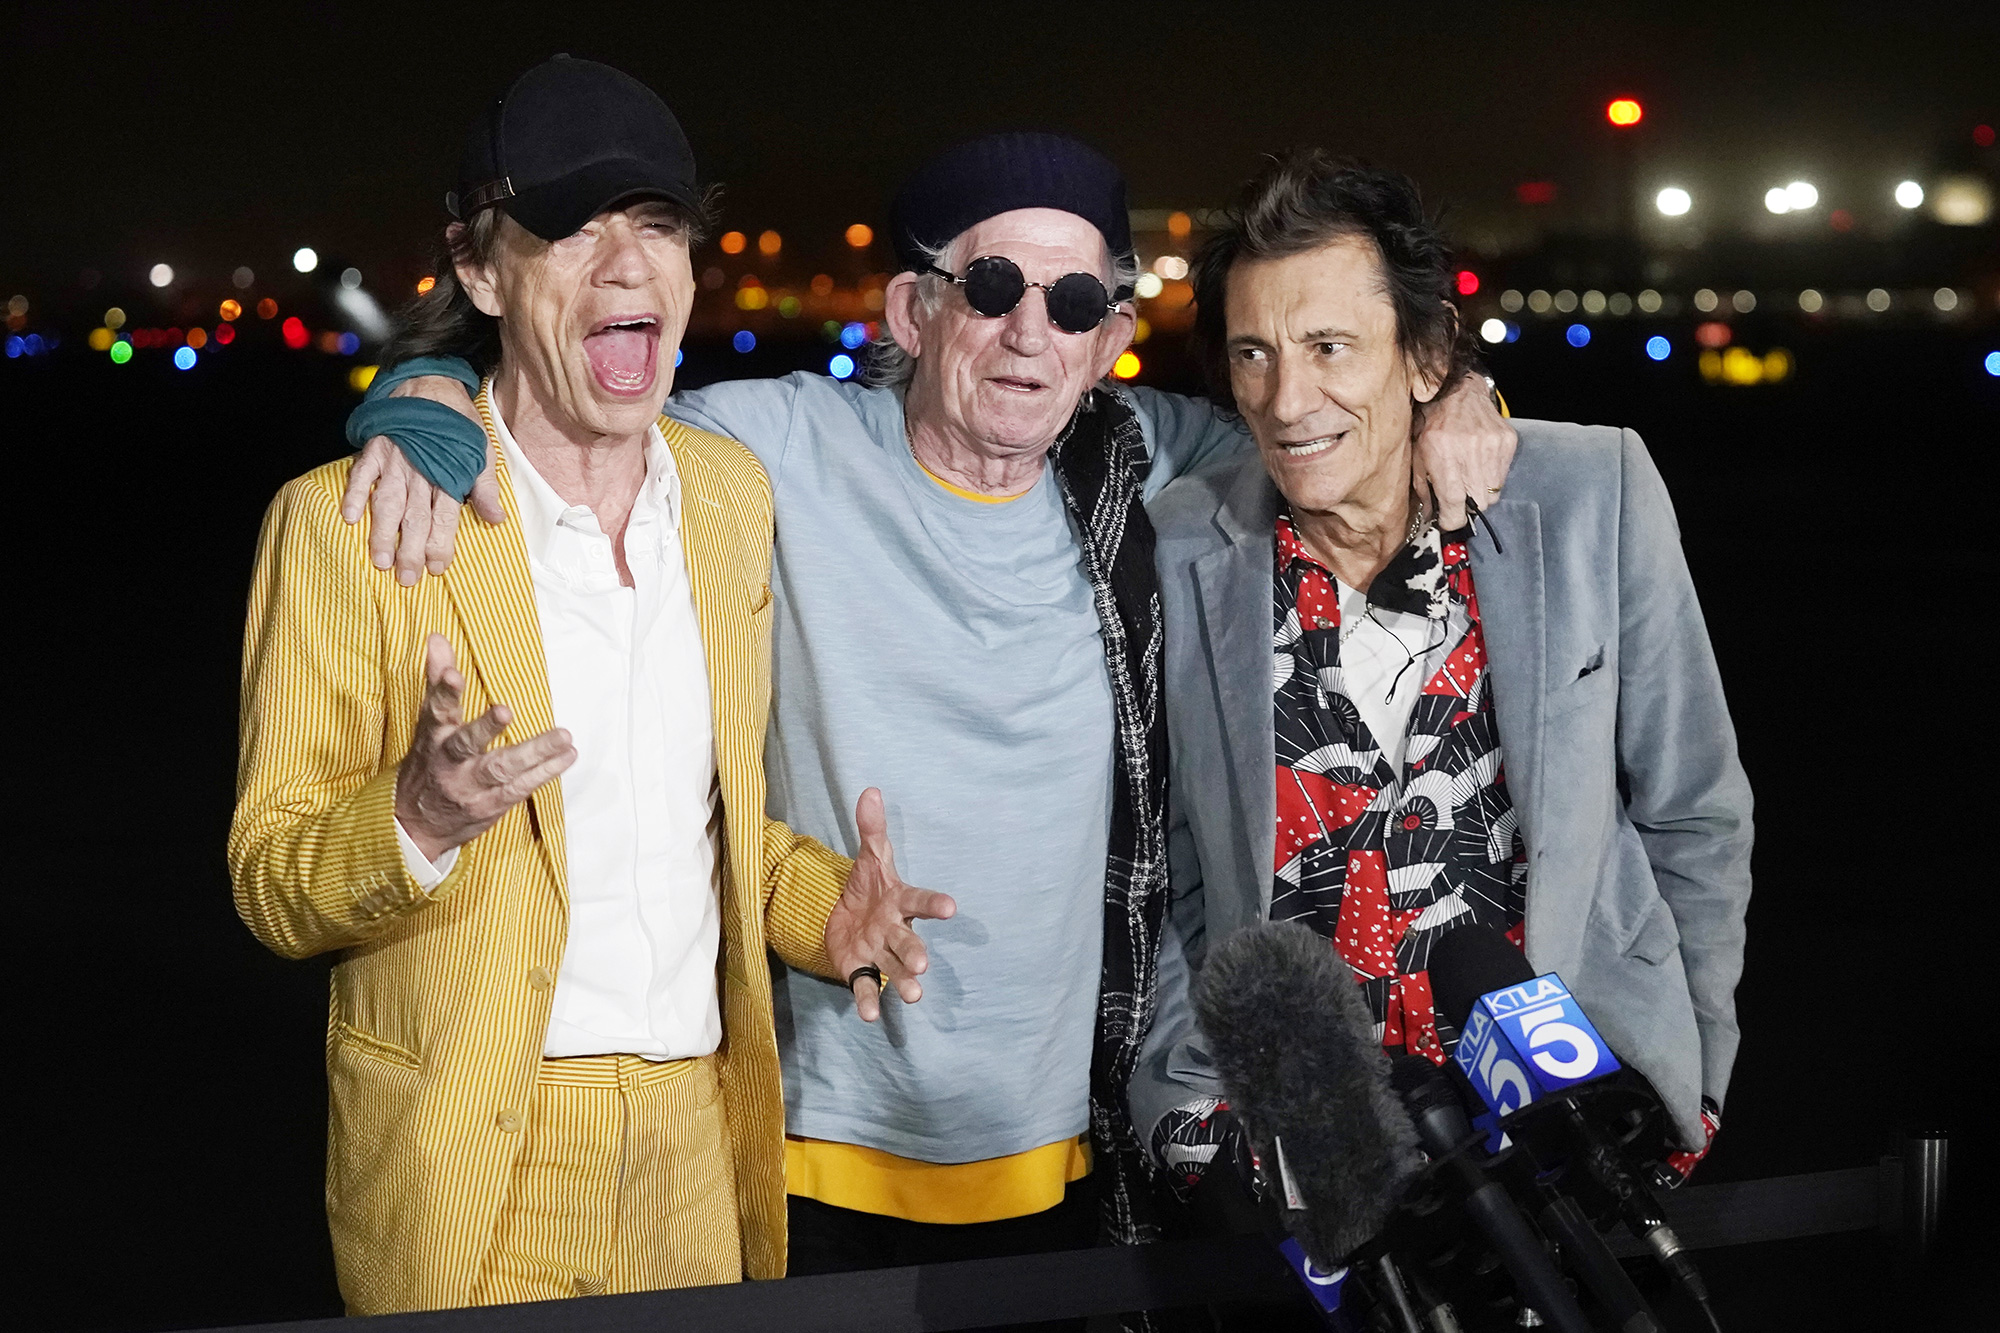 """Mick Jagger, left, Keith Richards, center, and Ron Wood of The Rolling Stones take questions from reporters after their plane landed at Hollywood Burbank Airport in Burbank, Calif., ahead of their shows this week at SoFi Stadium in Inglewood, Calif., for their """"NO FILTER"""" tour Rolling Stones Arrive in Los Angeles, Burbank, United States - 11 Oct 2021"""